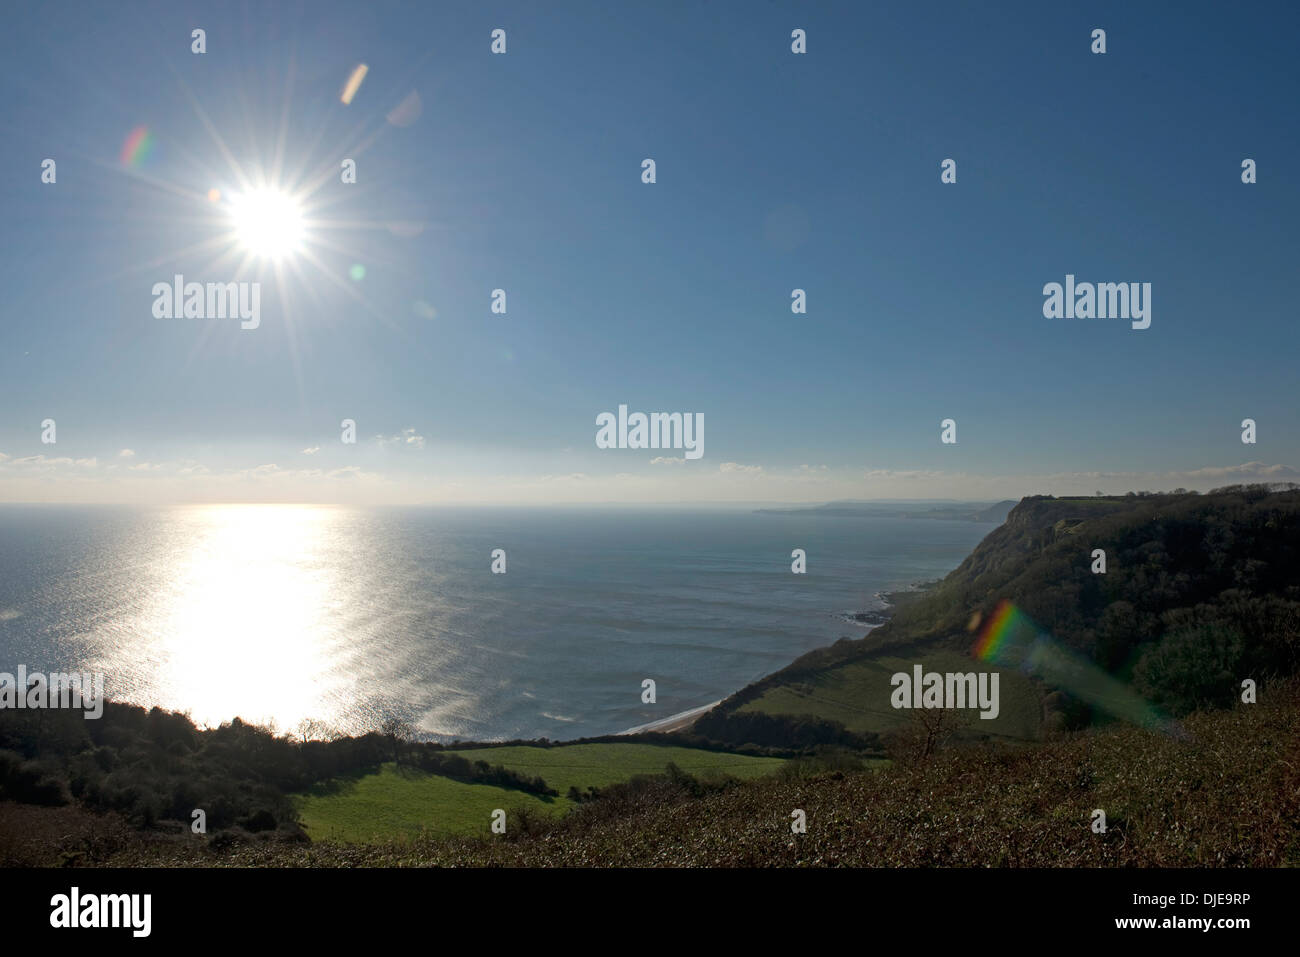 Lyme bay with a winter sun viewed from the cliffs at Weston Mouth east of Sidmouth in Devon - Stock Image